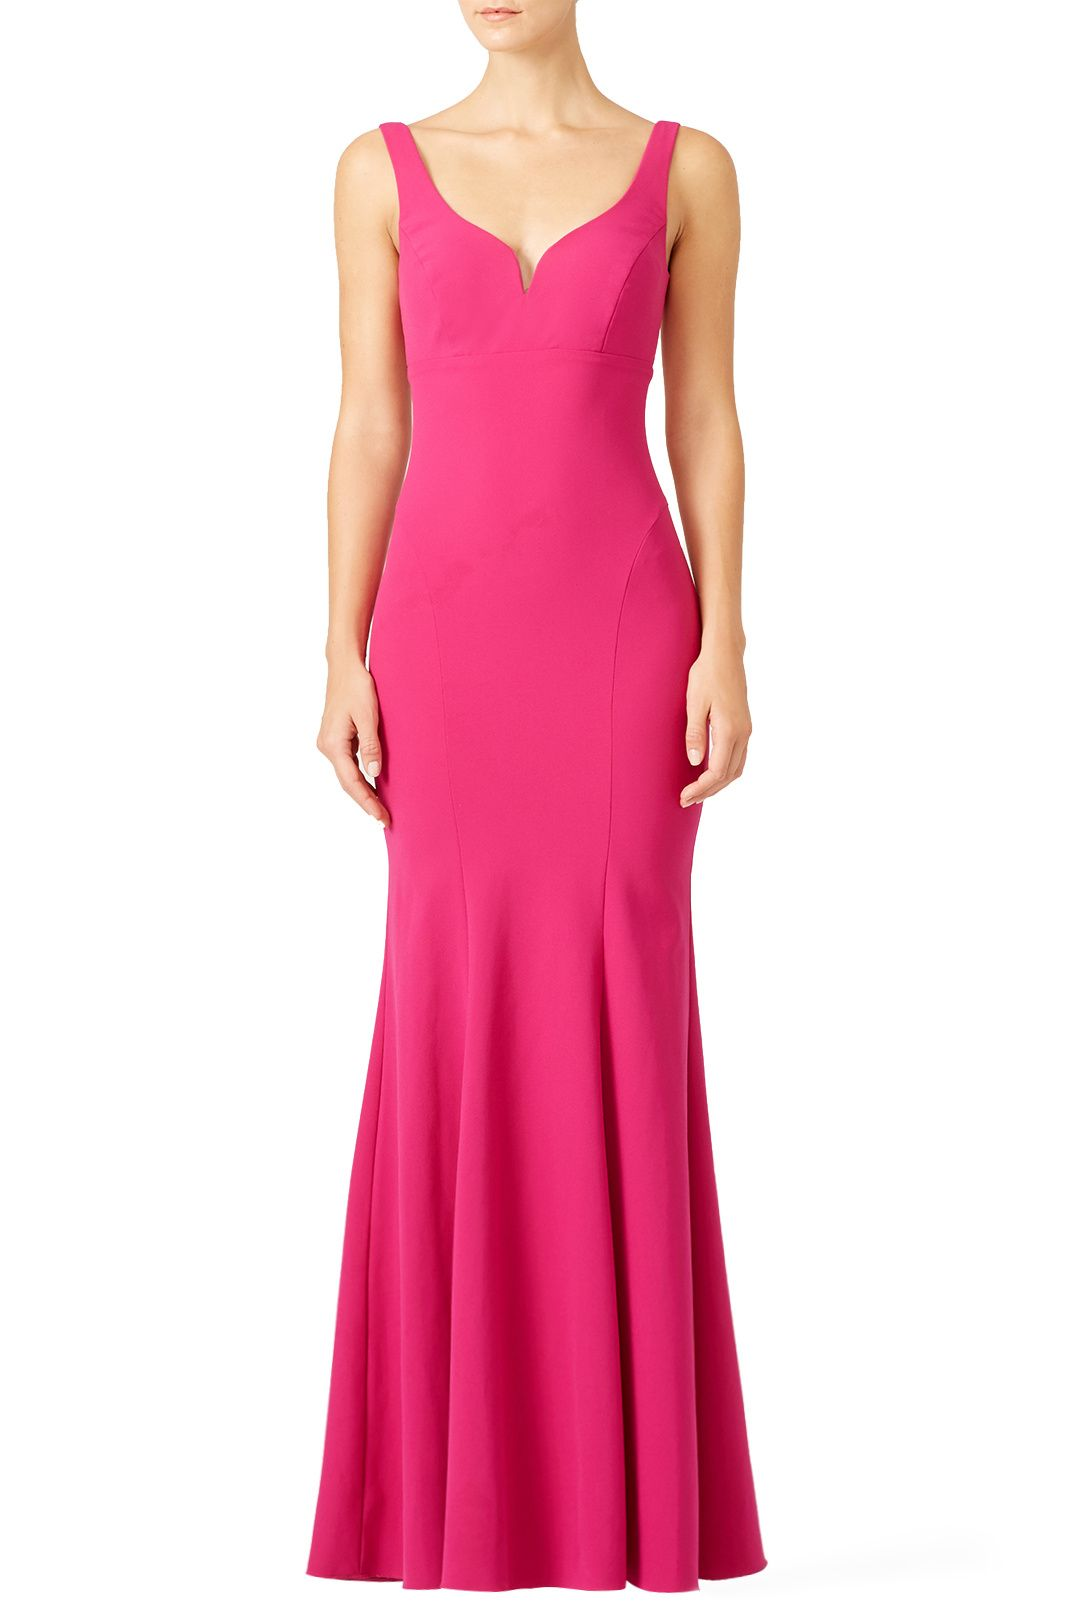 Rent Full Heart Gown by Nicole Miller for $90 only at Rent the ...